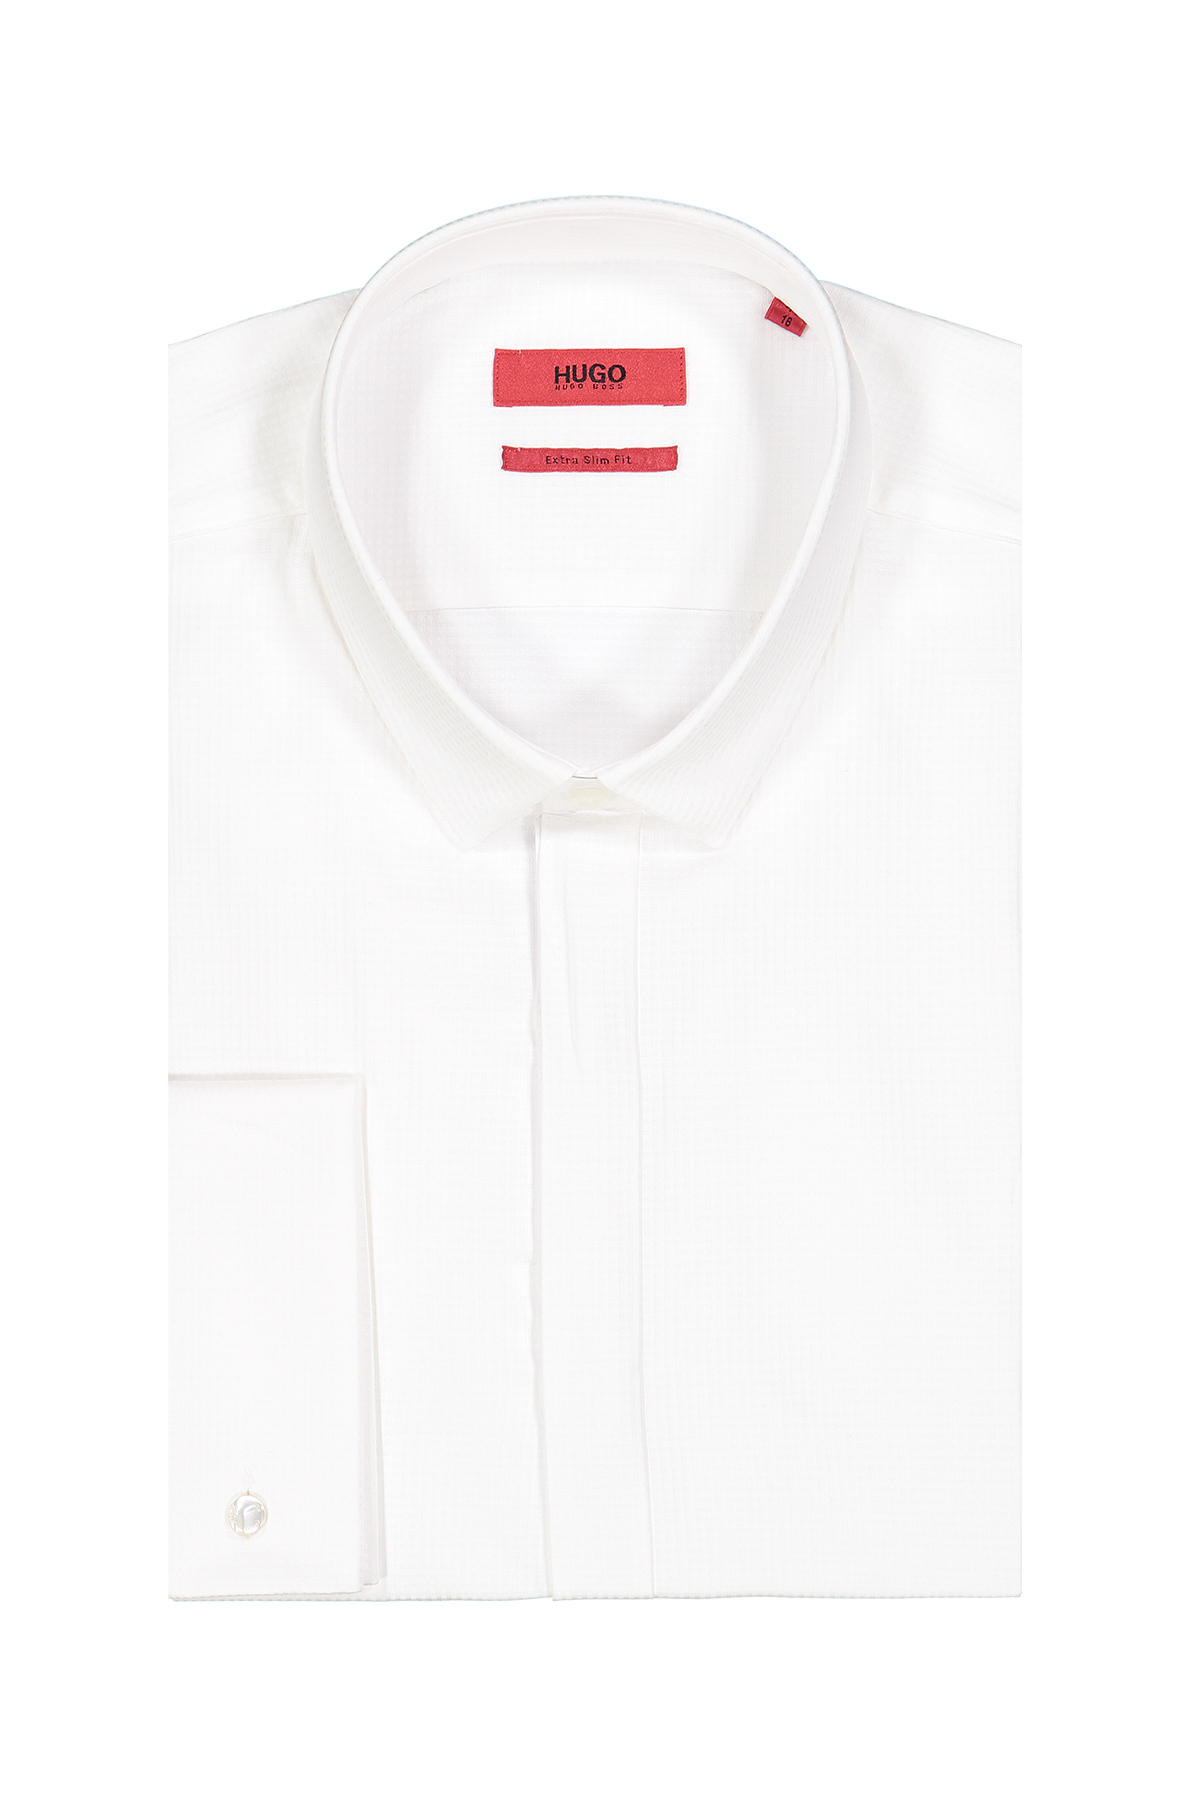 Camisa Hugo Boss, Extra slim fit, blanca tramada, puño doble.